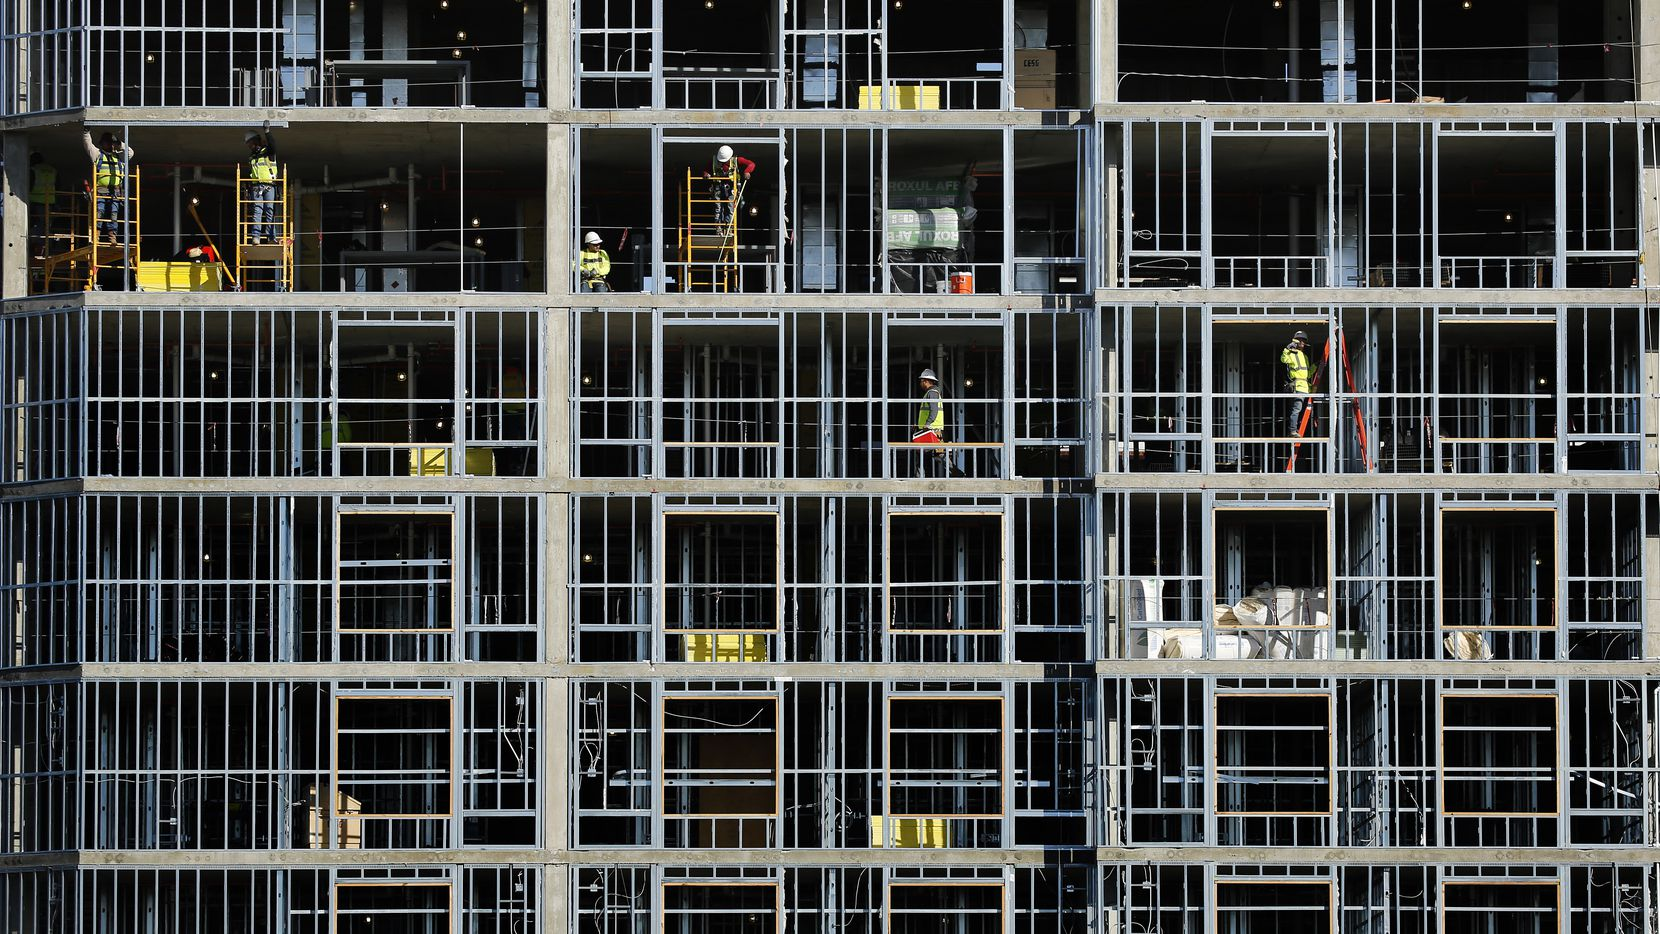 More than 4 million square feet of office space is being built in D-FW.